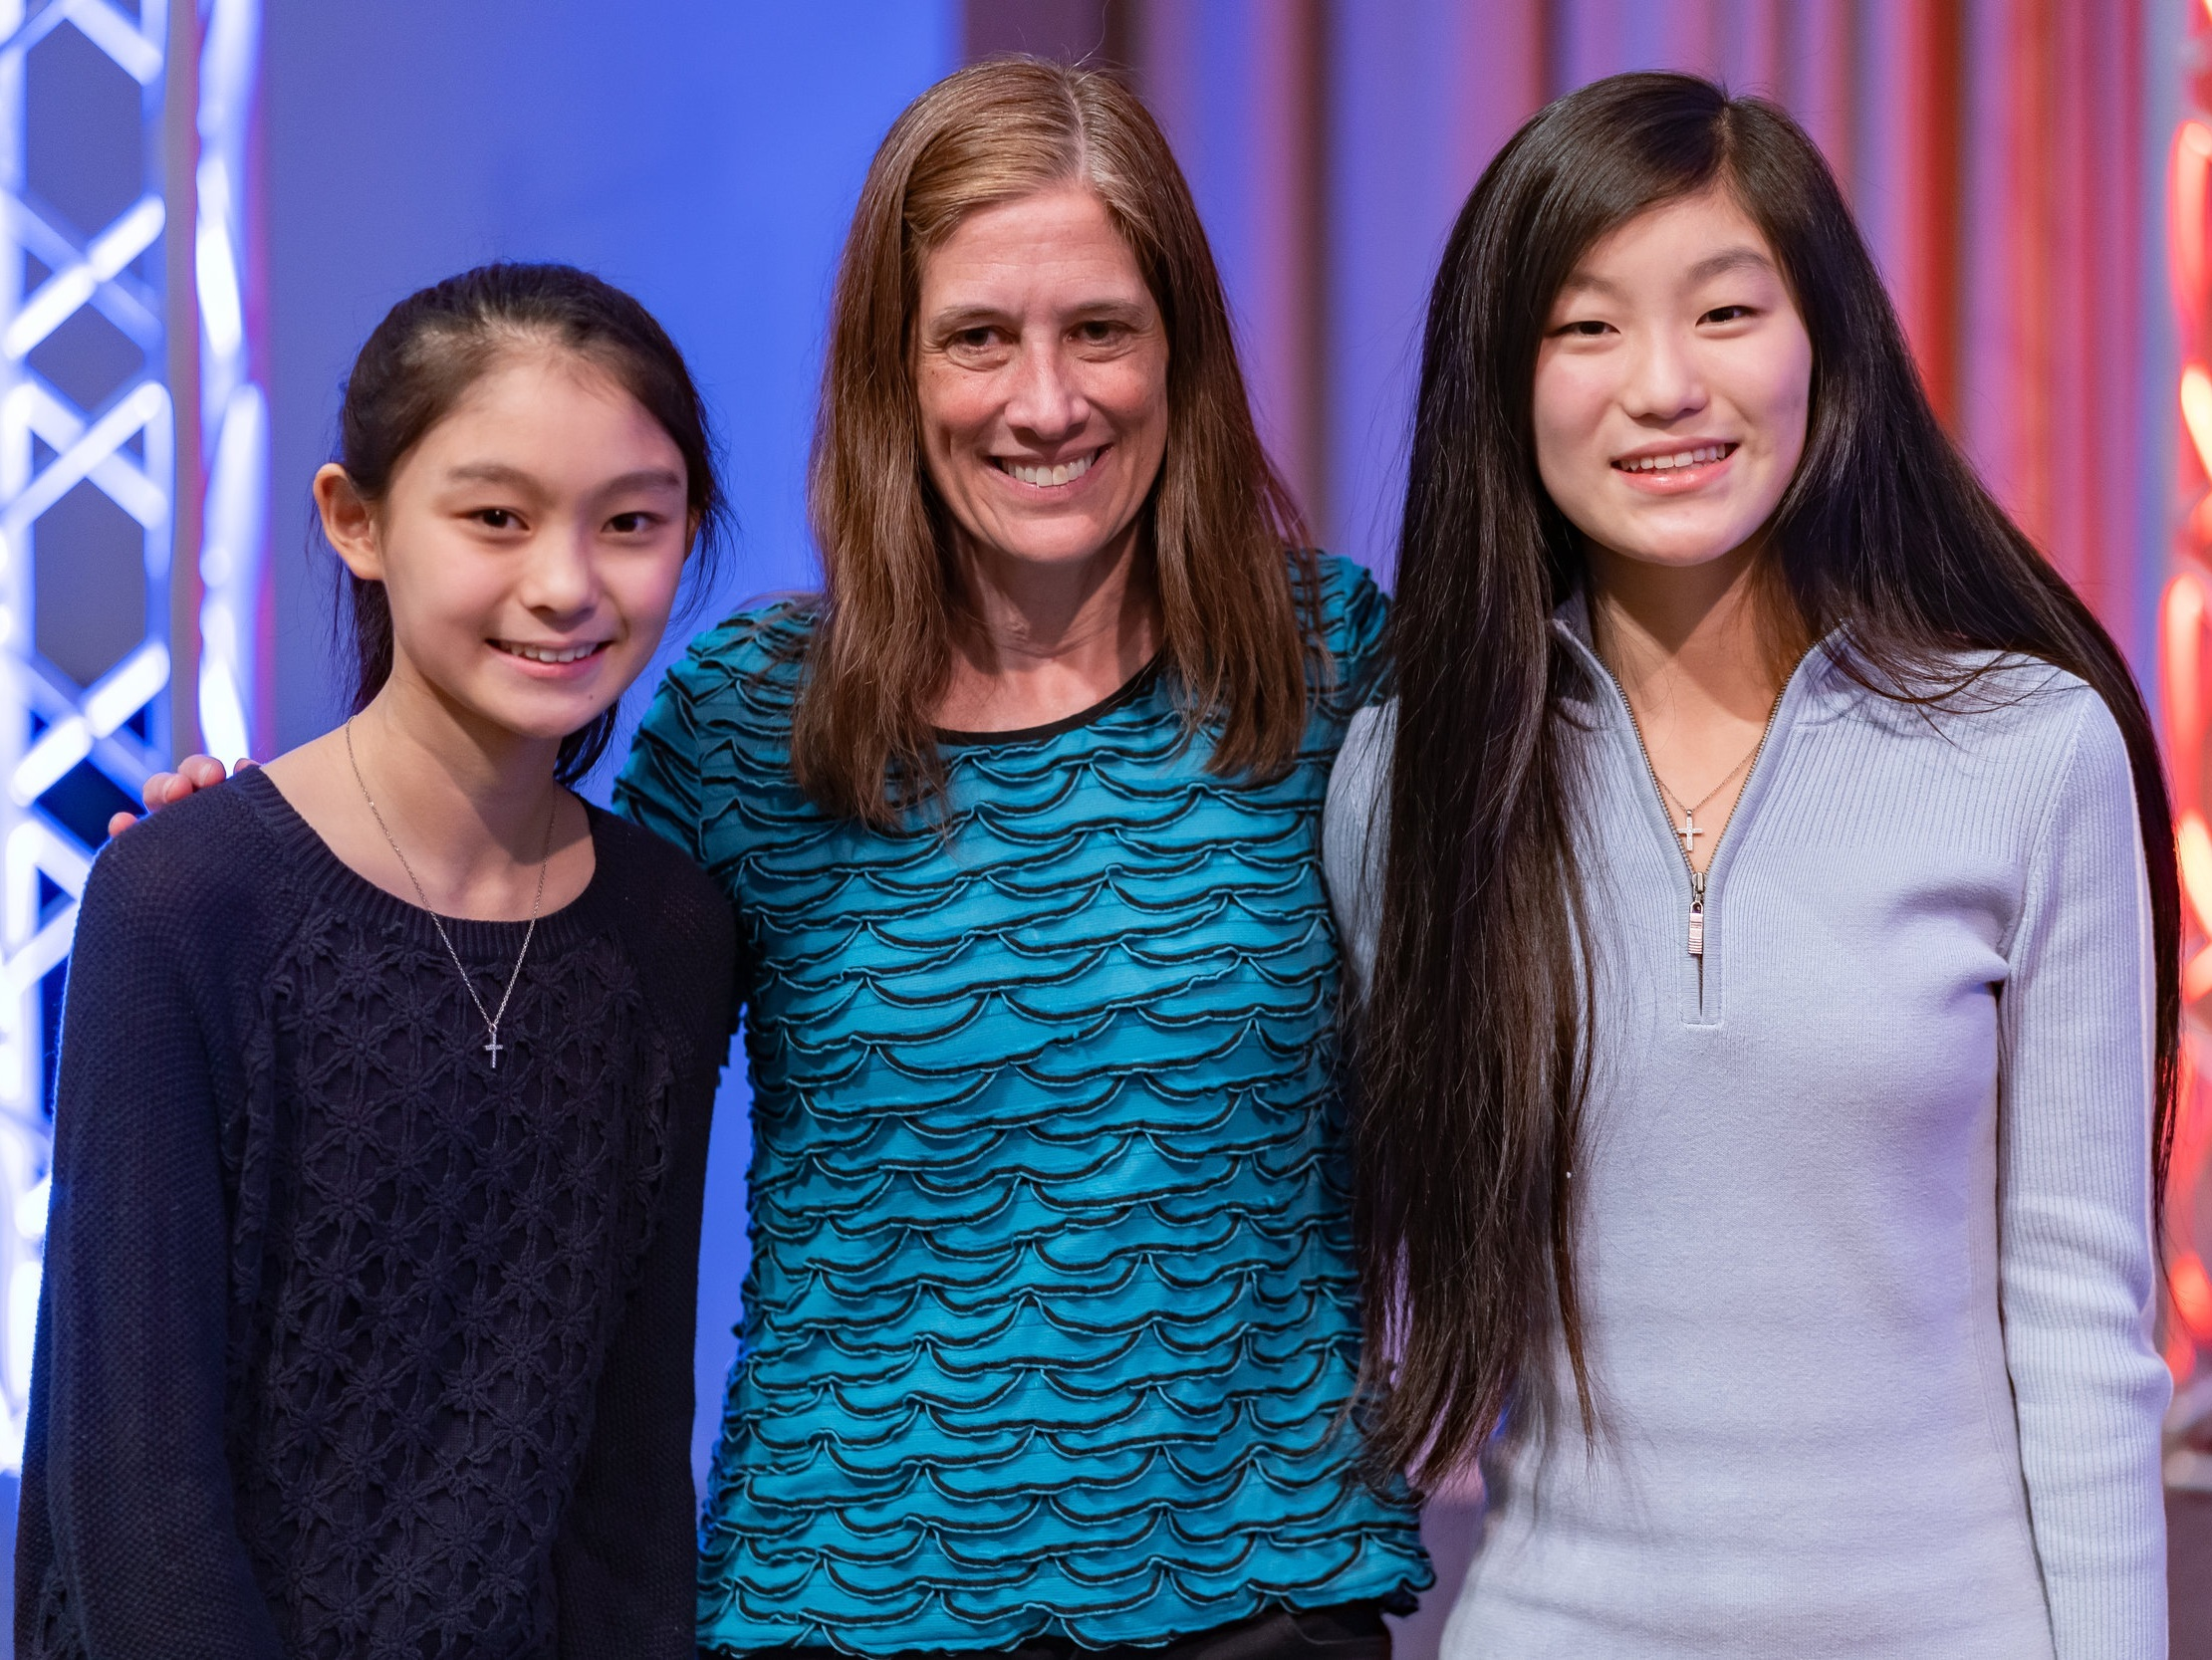 Radiant Youth Perception Project - Jessica and Joanne Xu with Nancy Jeggle